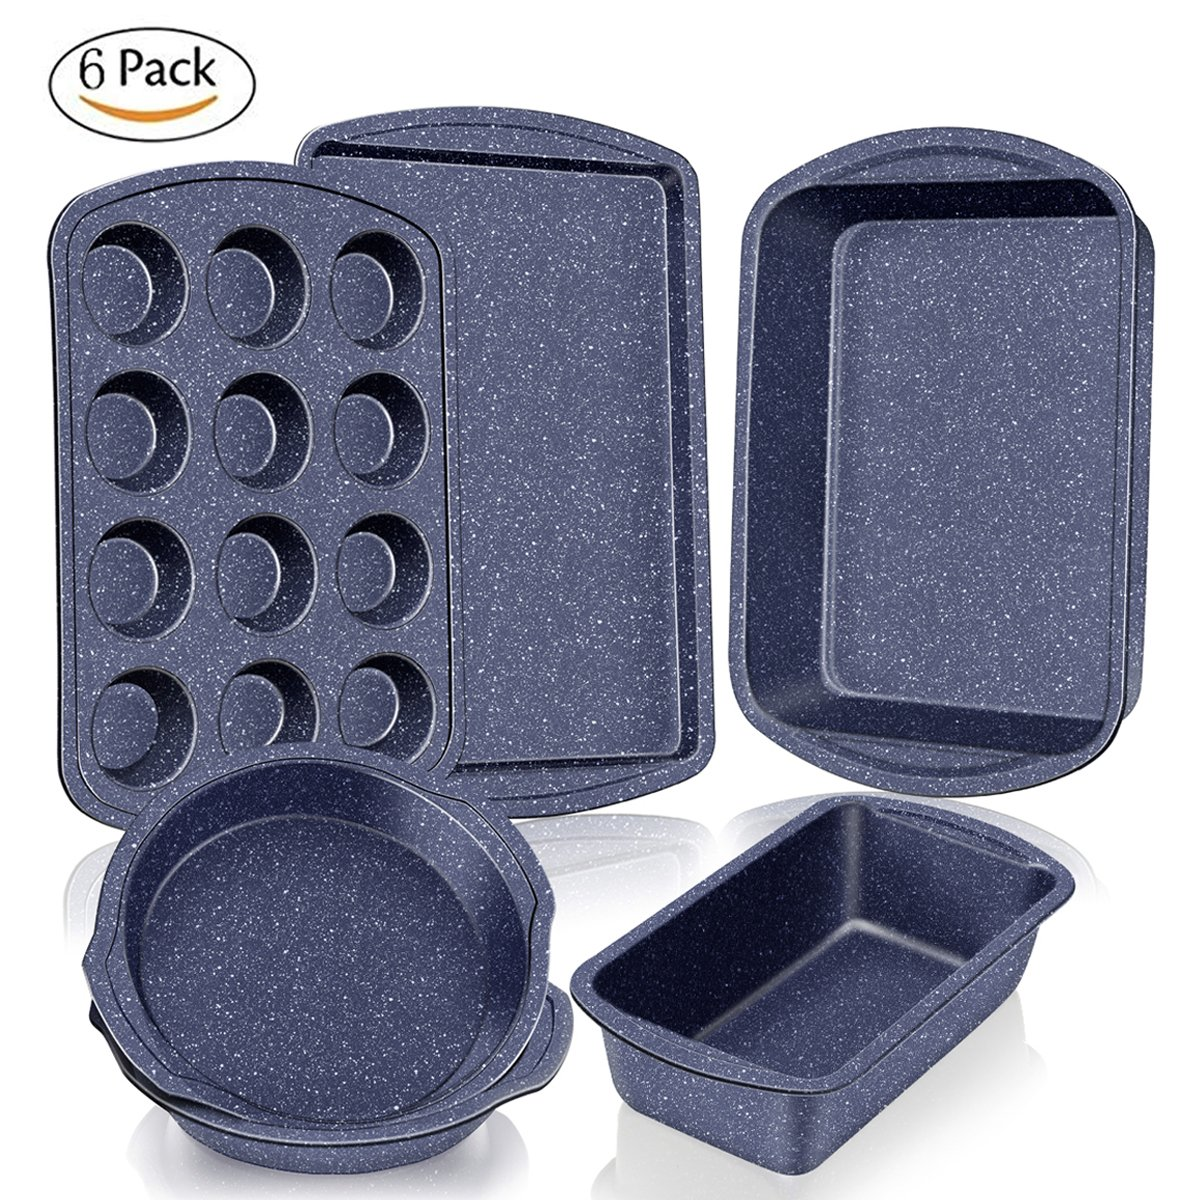 Baking Pan Nonstick Bakeware Set 6-Piece, Baking Sheet No Stick Carbon Steel Cookie Sheet, Muffin Roasting Loaf Pan and Pizza Bread Pans Cookware Set